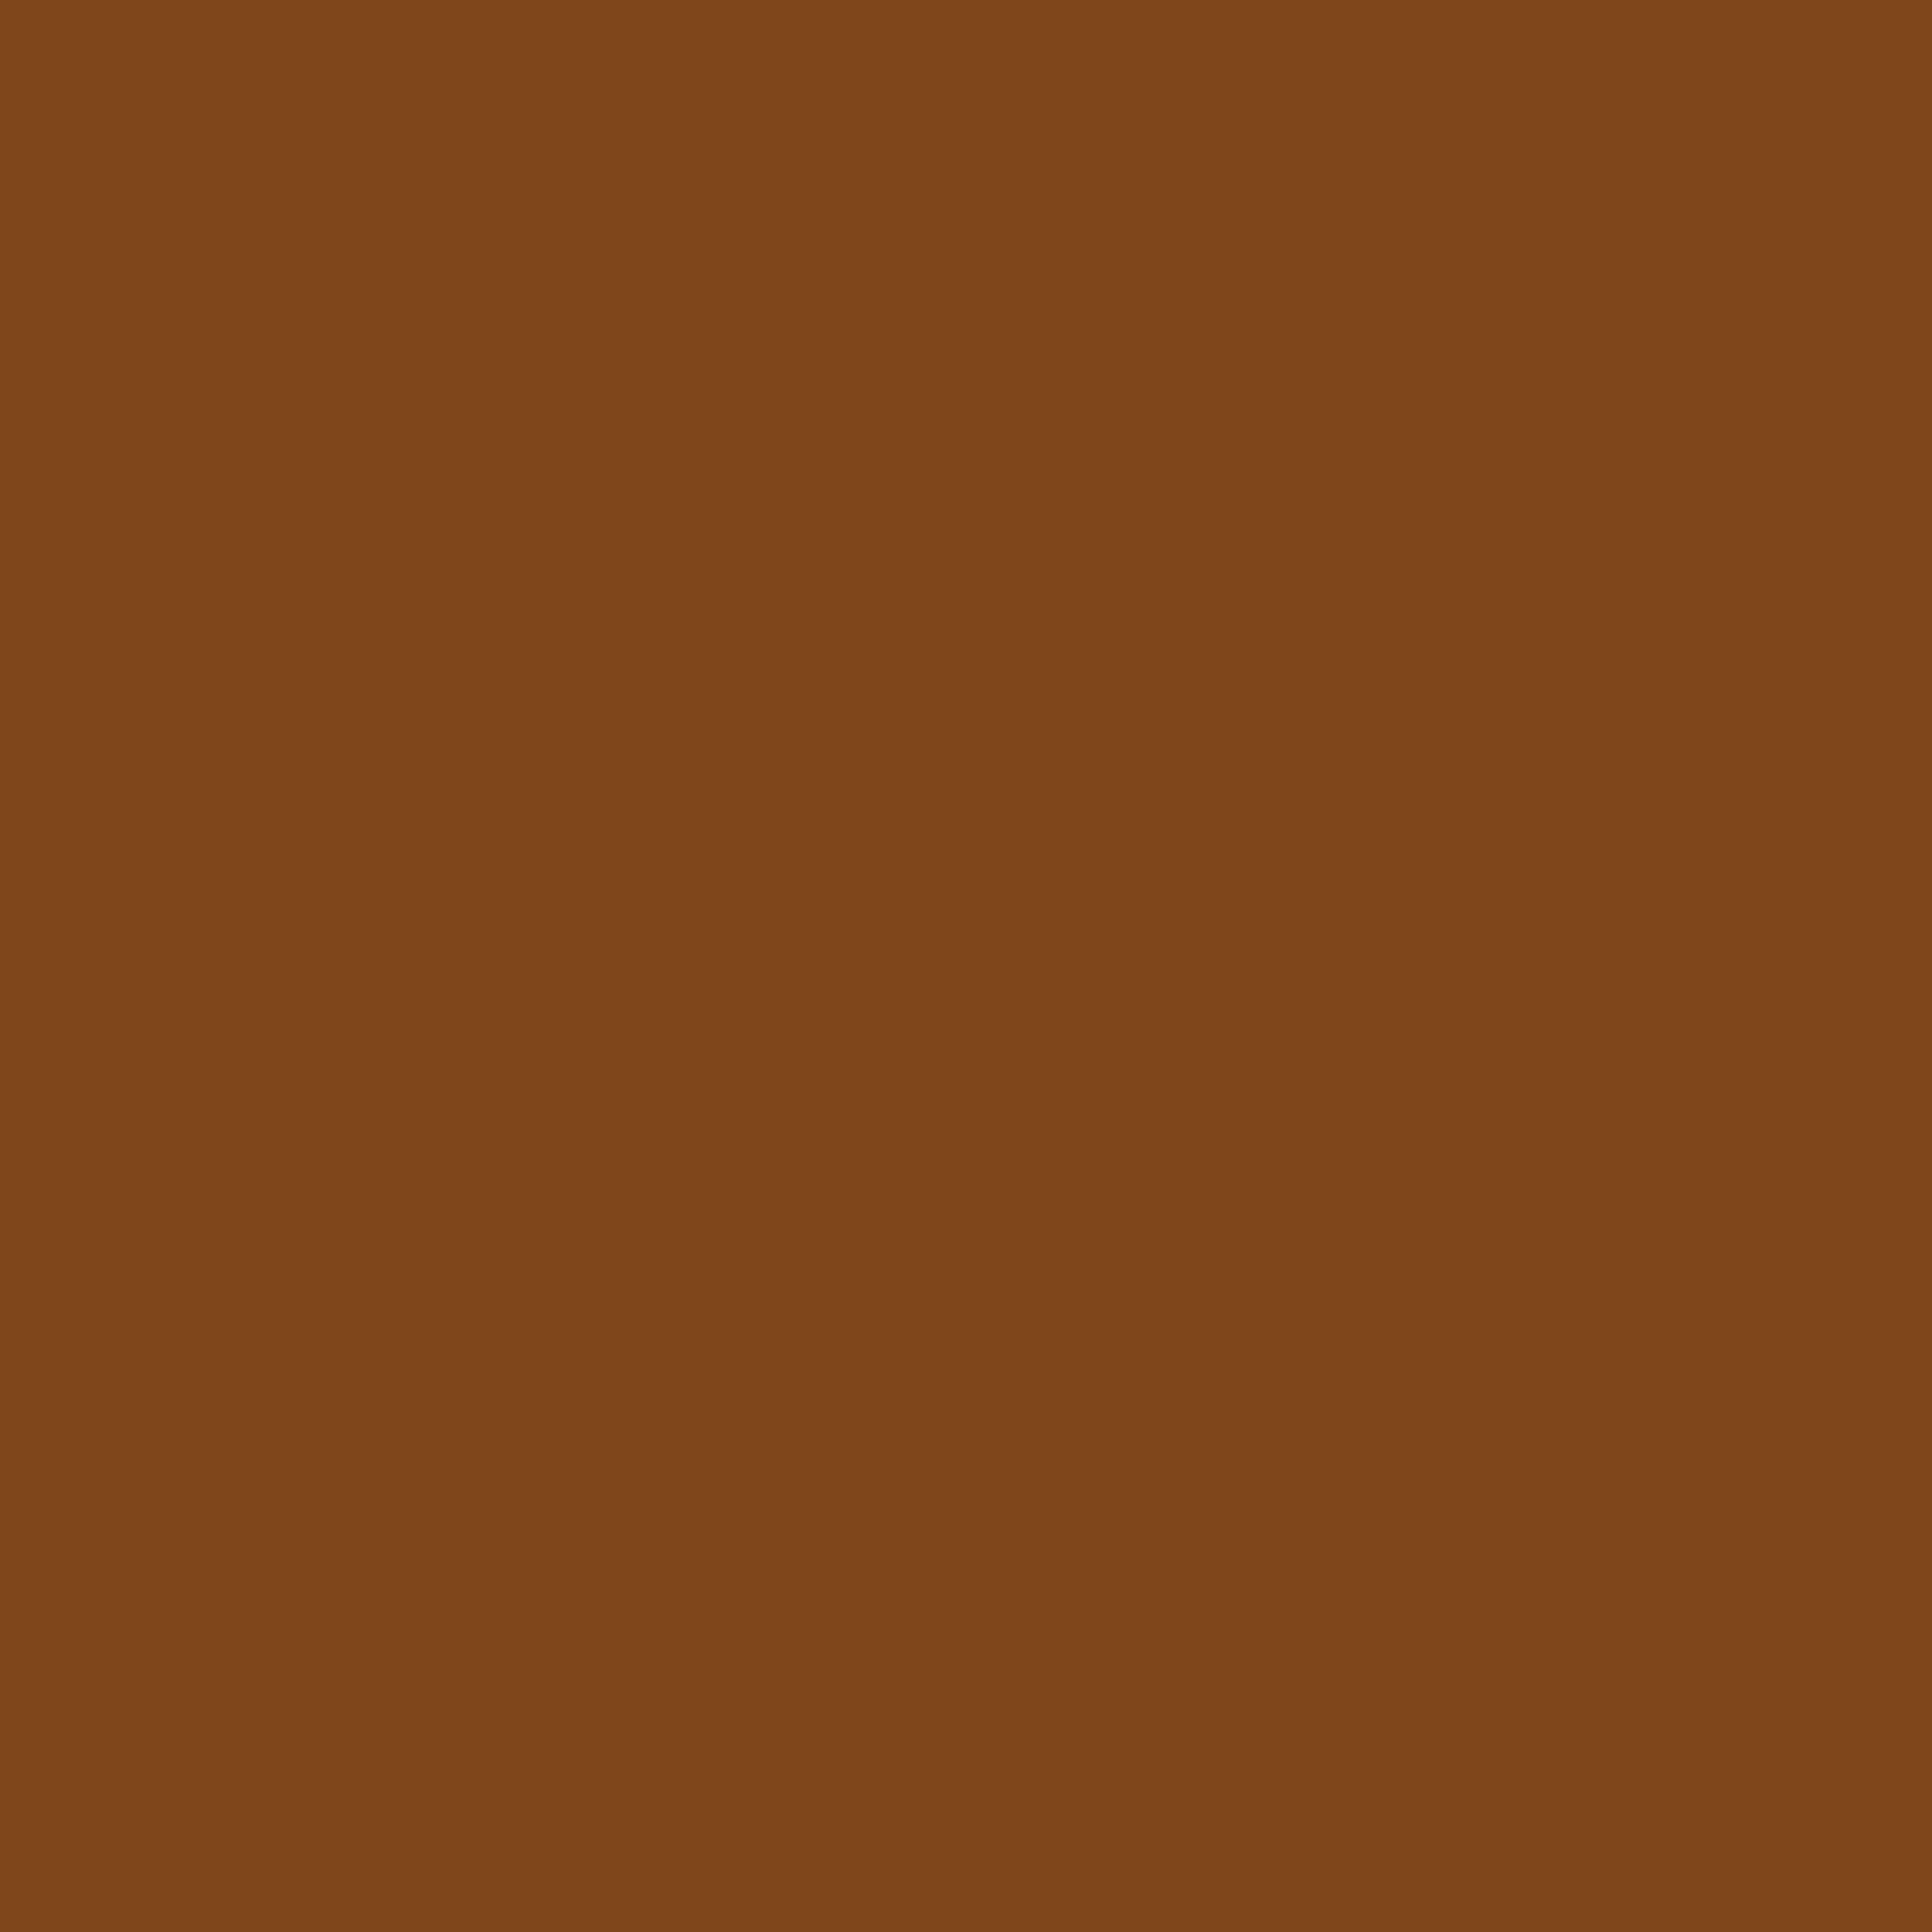 3600x3600 Russet Solid Color Background